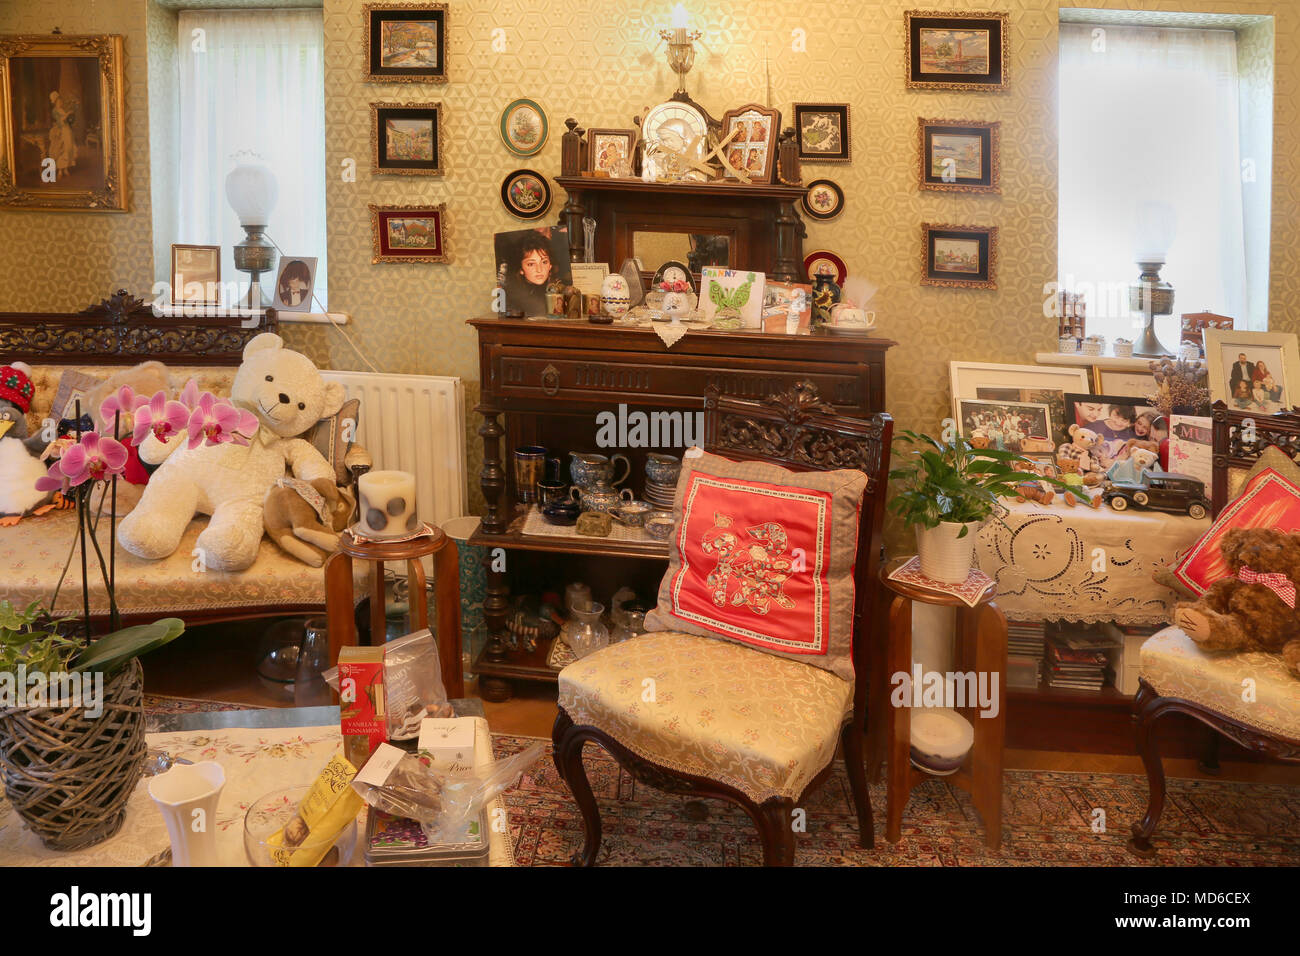 Interior of Sitting Room with Furniture In House Surrey England - Stock Image